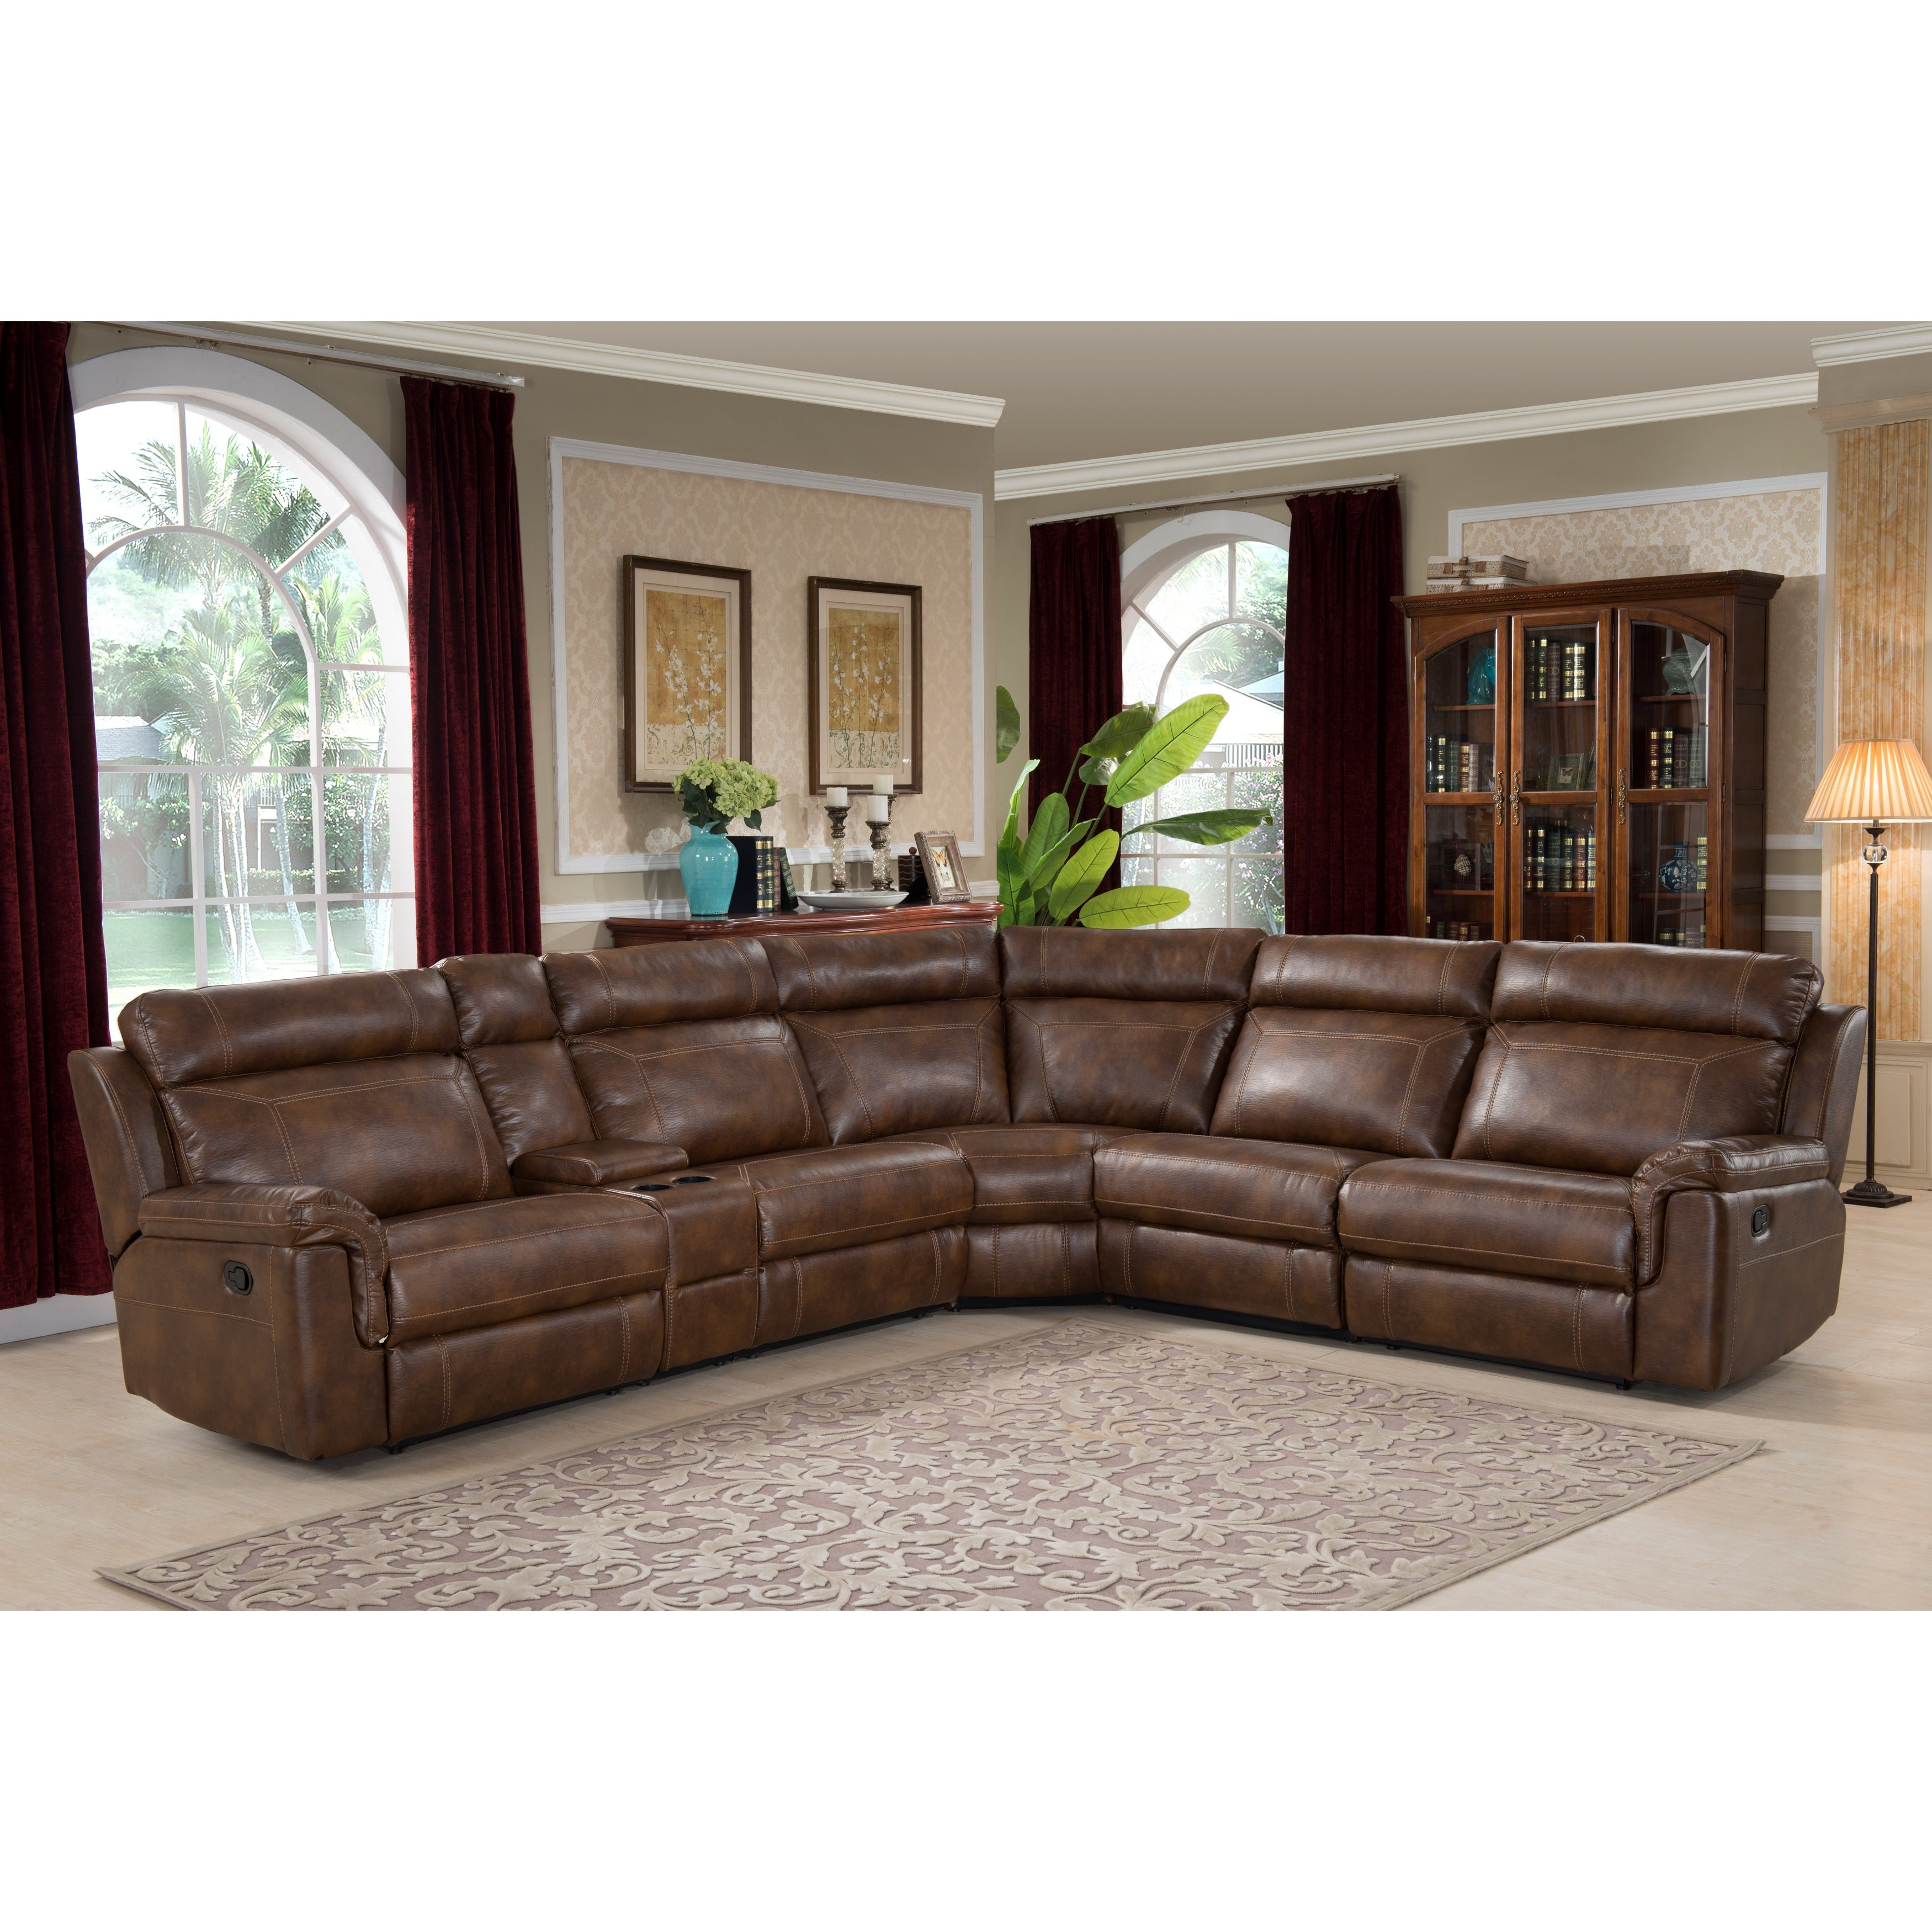 Shop Nicole Reclining Brown Leather Sectional Sofa On Sale Free